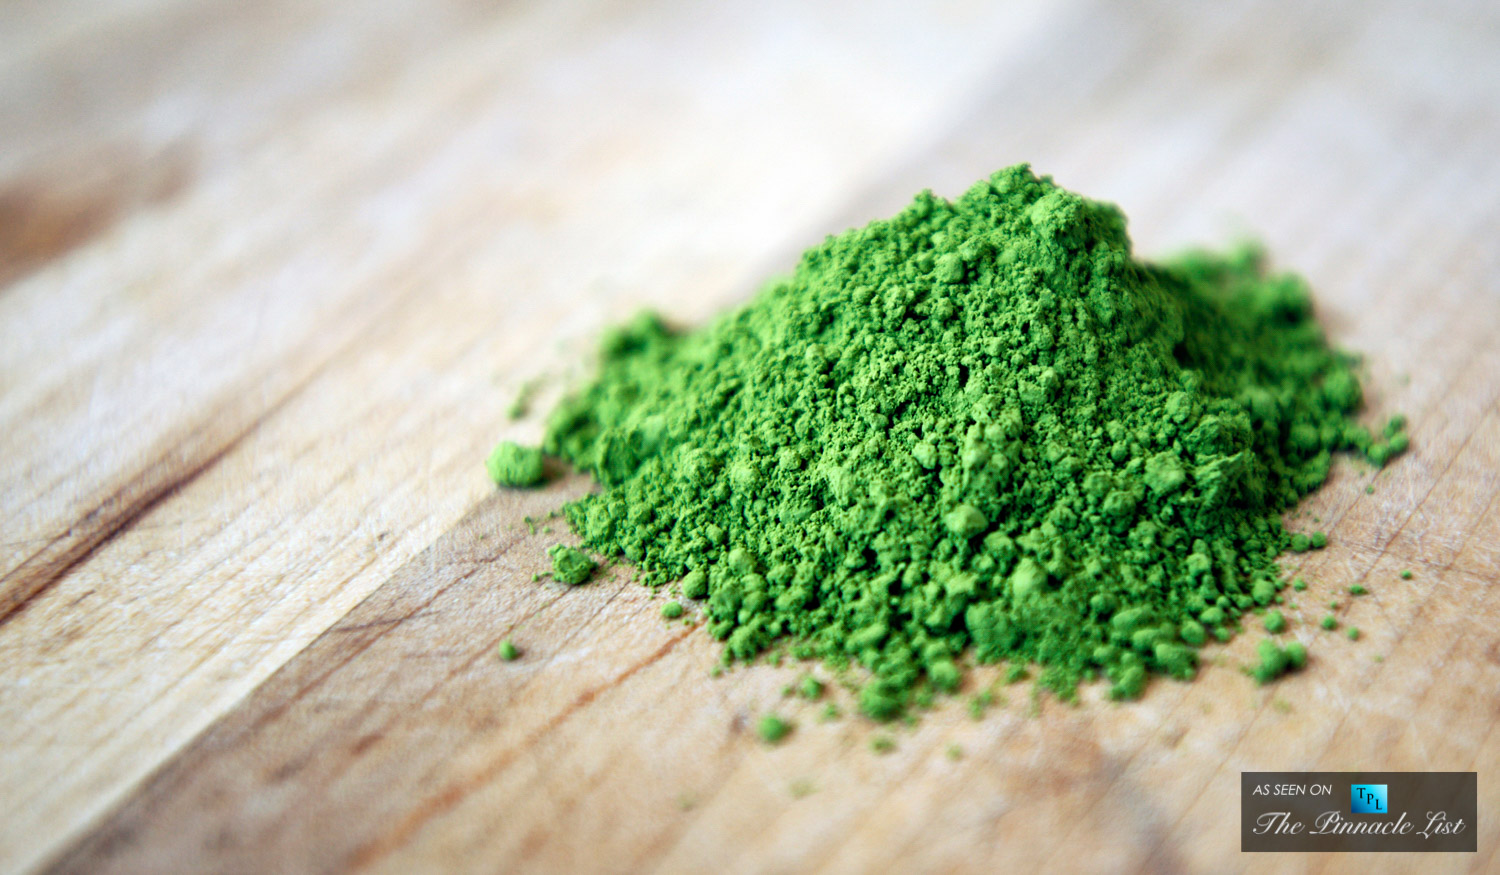 Matcha - The Luxury of Japanese Green Tea - A Global Phenomenon for Living a Healthy Lifestyle